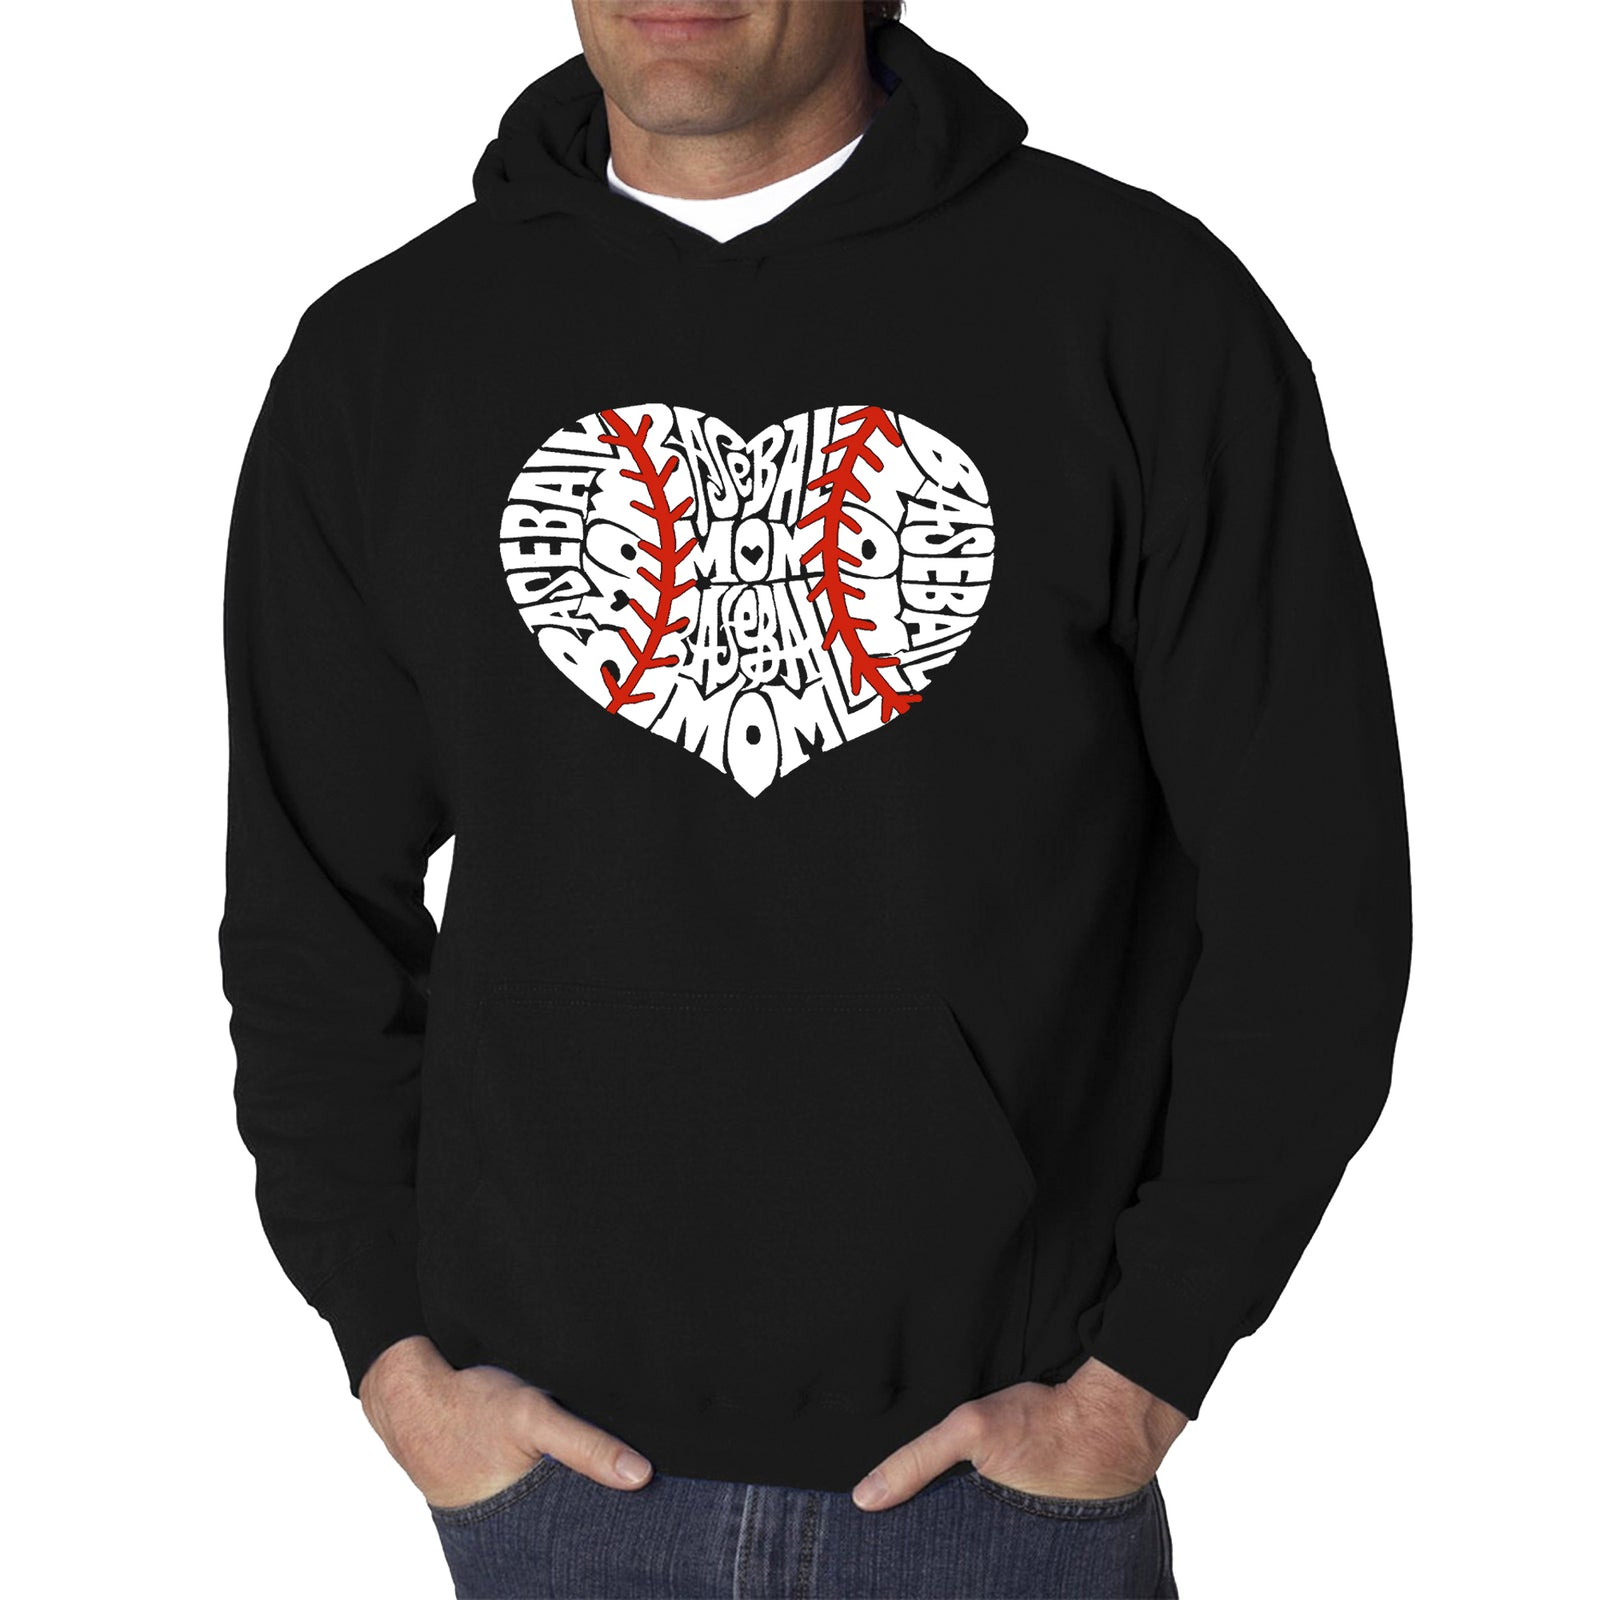 Men's Word Art Hooded Sweatshirt - Baseball Mom